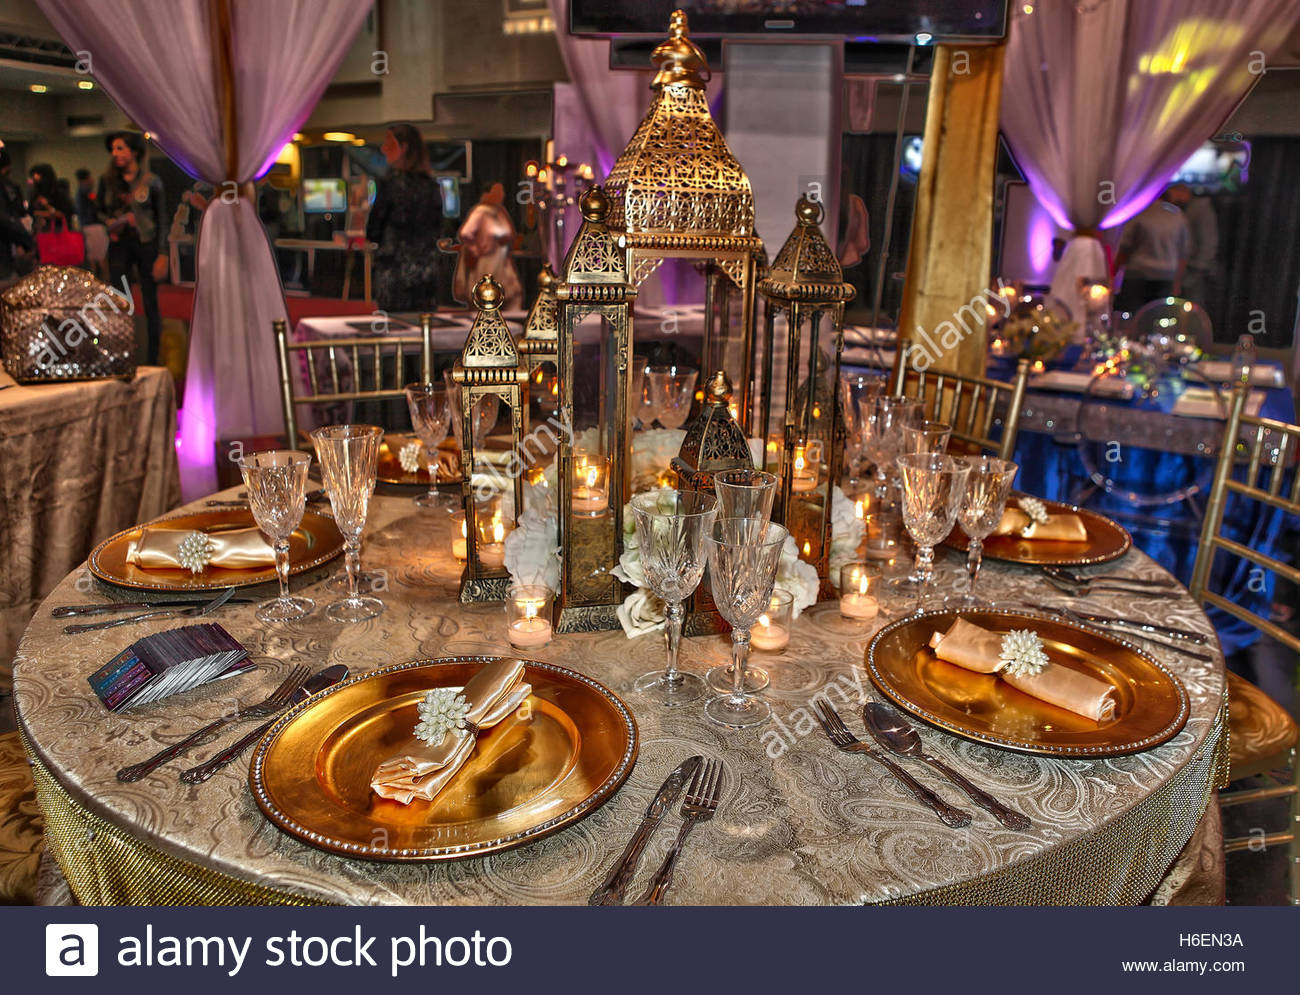 Elaborate Table Setting Decorated With Fancy Napkins, Candles, And Lanterns.